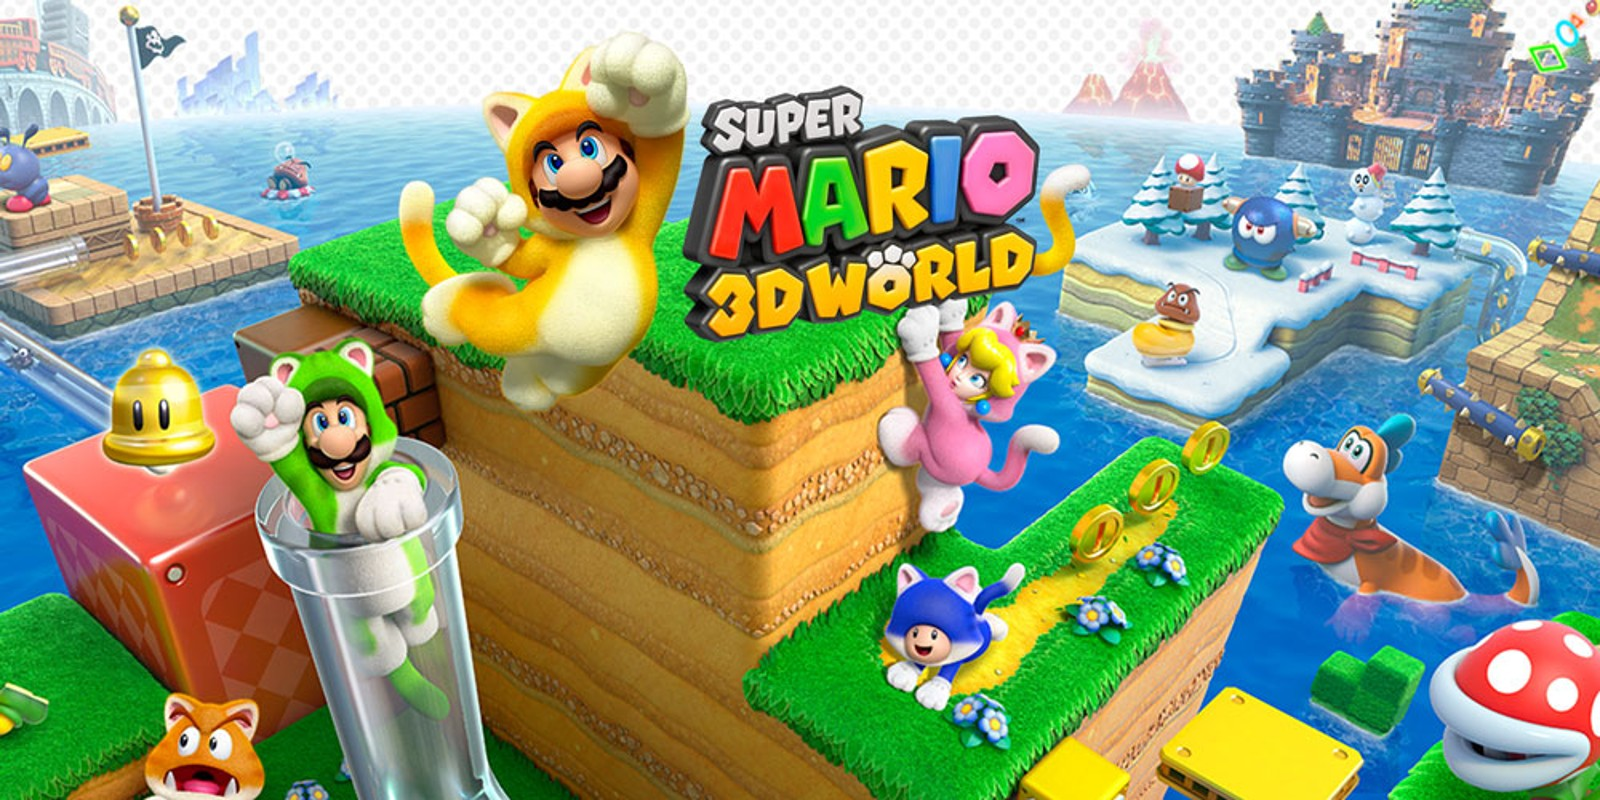 How Many Worlds Are There in Super Mario 3D World